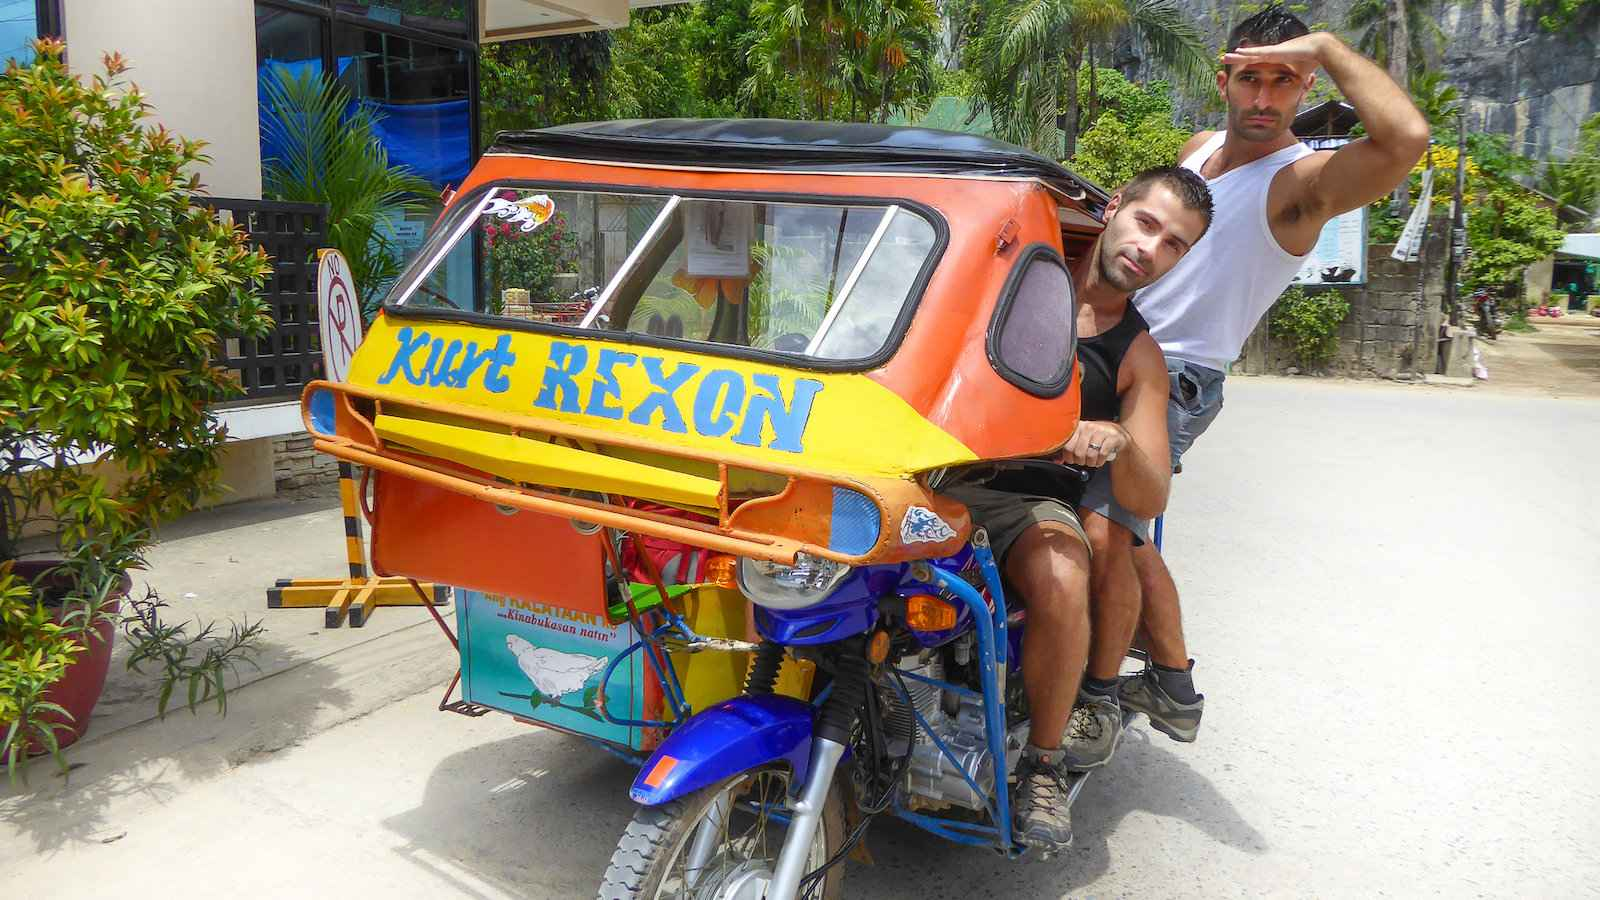 Tricycles are also a popular form of transport in the Philippines